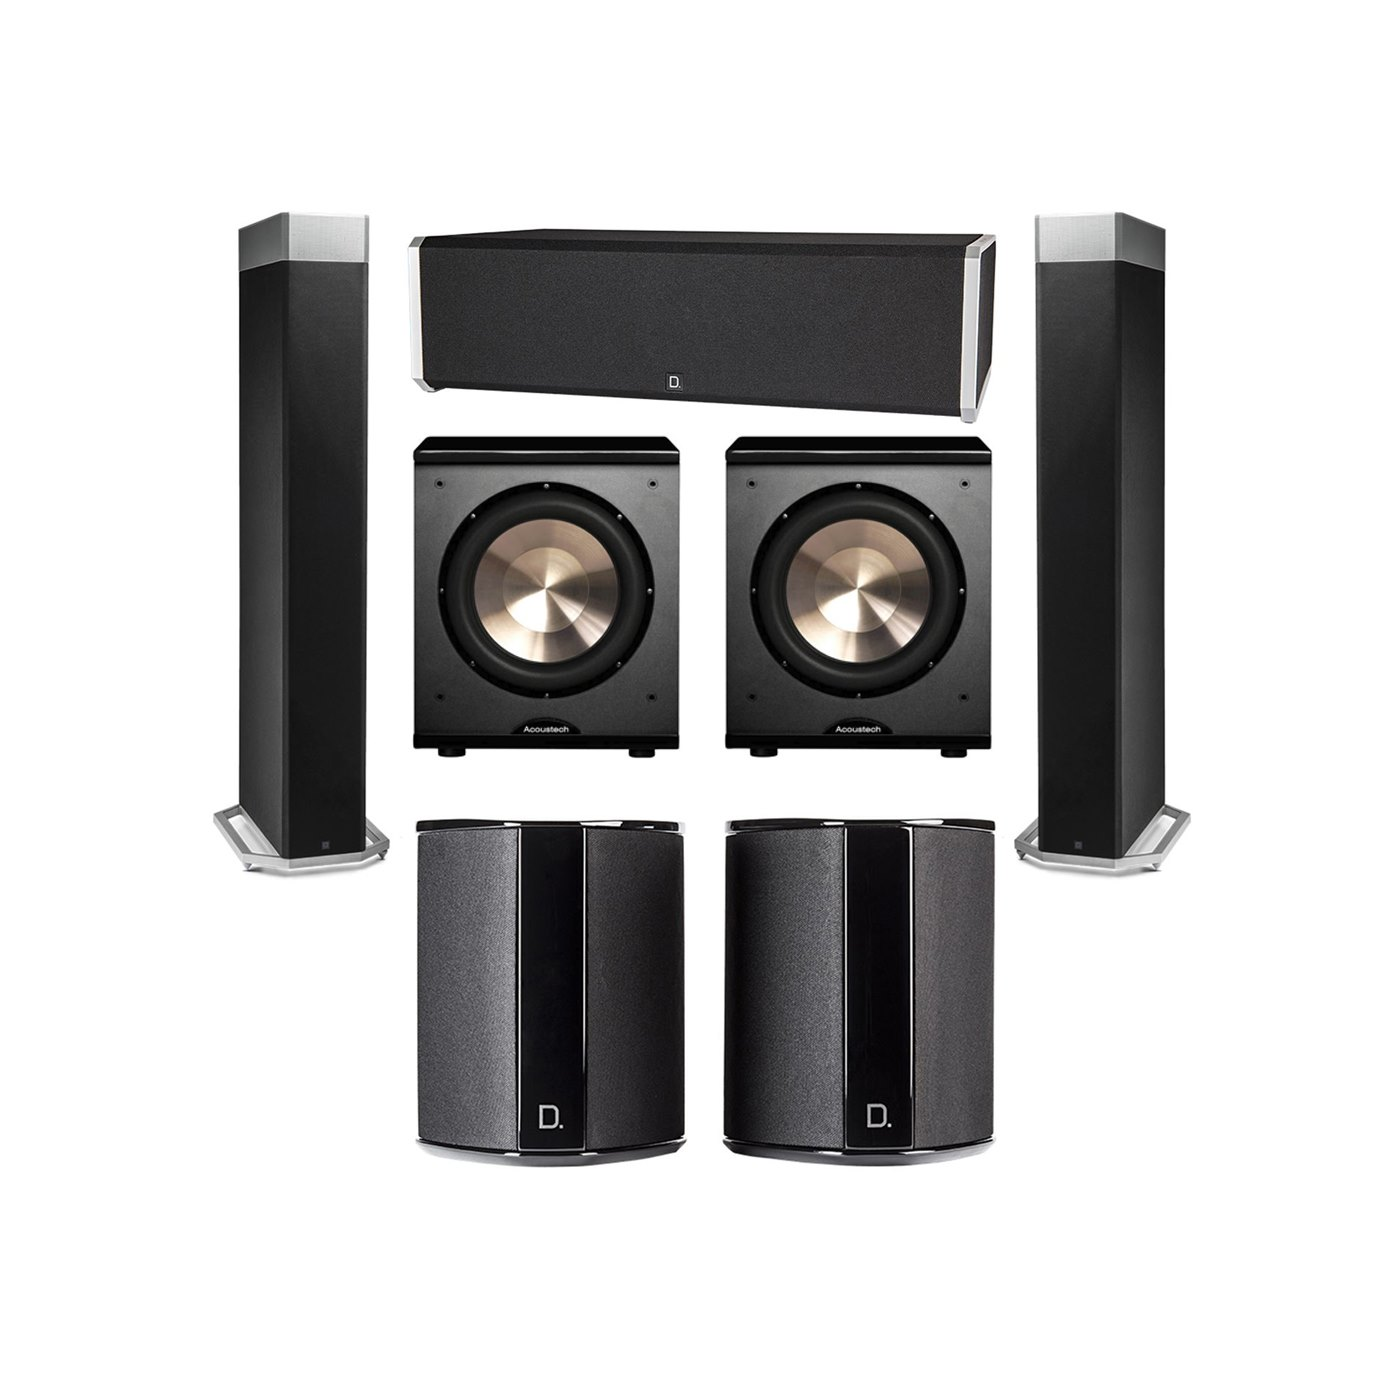 Definitive Technology 5.2 System with 2 BP9080X Tower Speakers, 1 CS9040 Center Channel Speaker, 2 SR9040 Surround Speaker, 2 BIC PL-200 Subwoofer